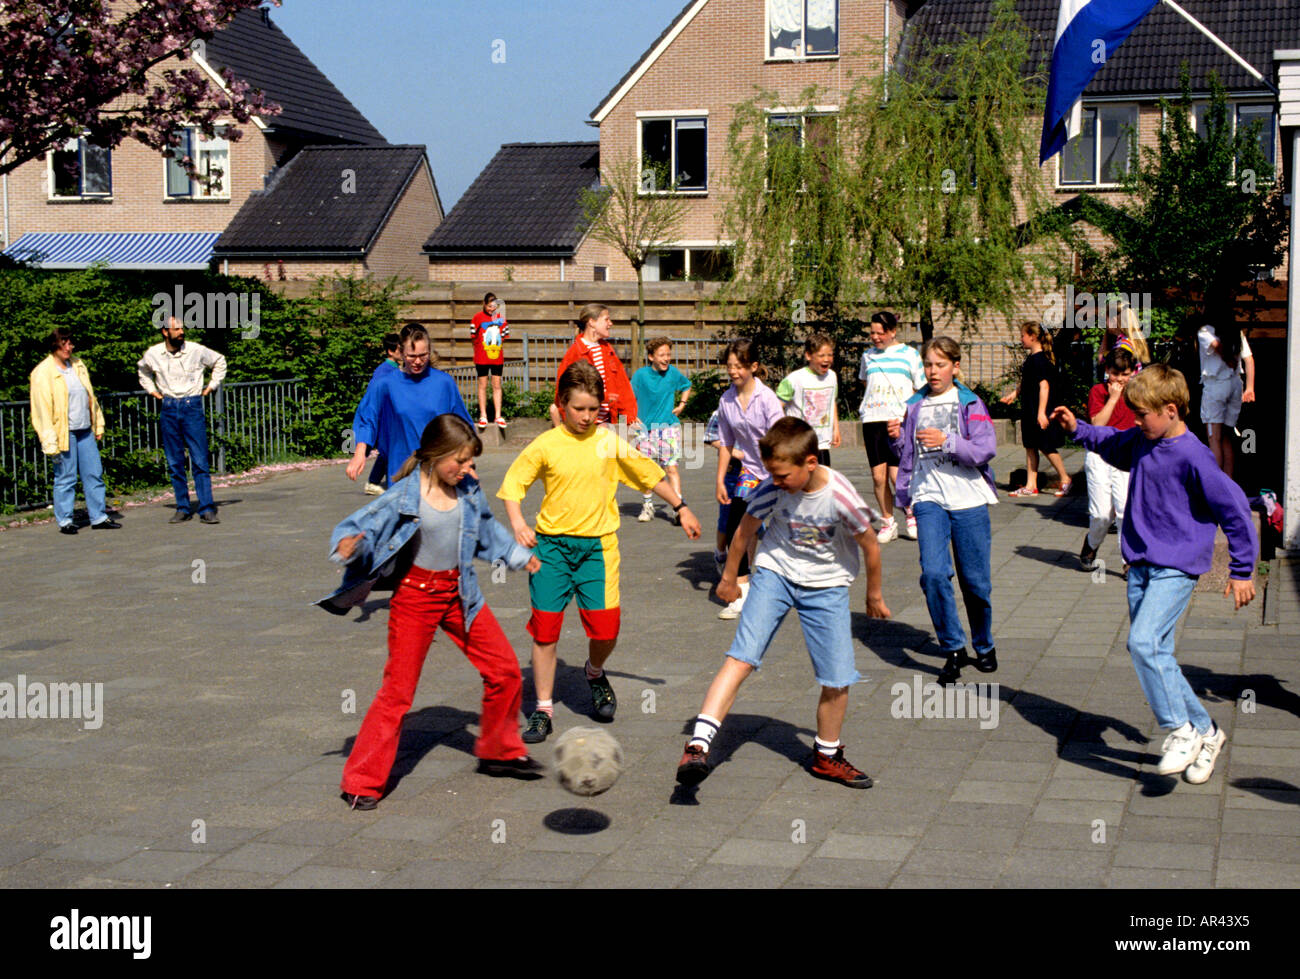 Netherlands Holland  school yard play ground lay football soccer ball player - Stock Image